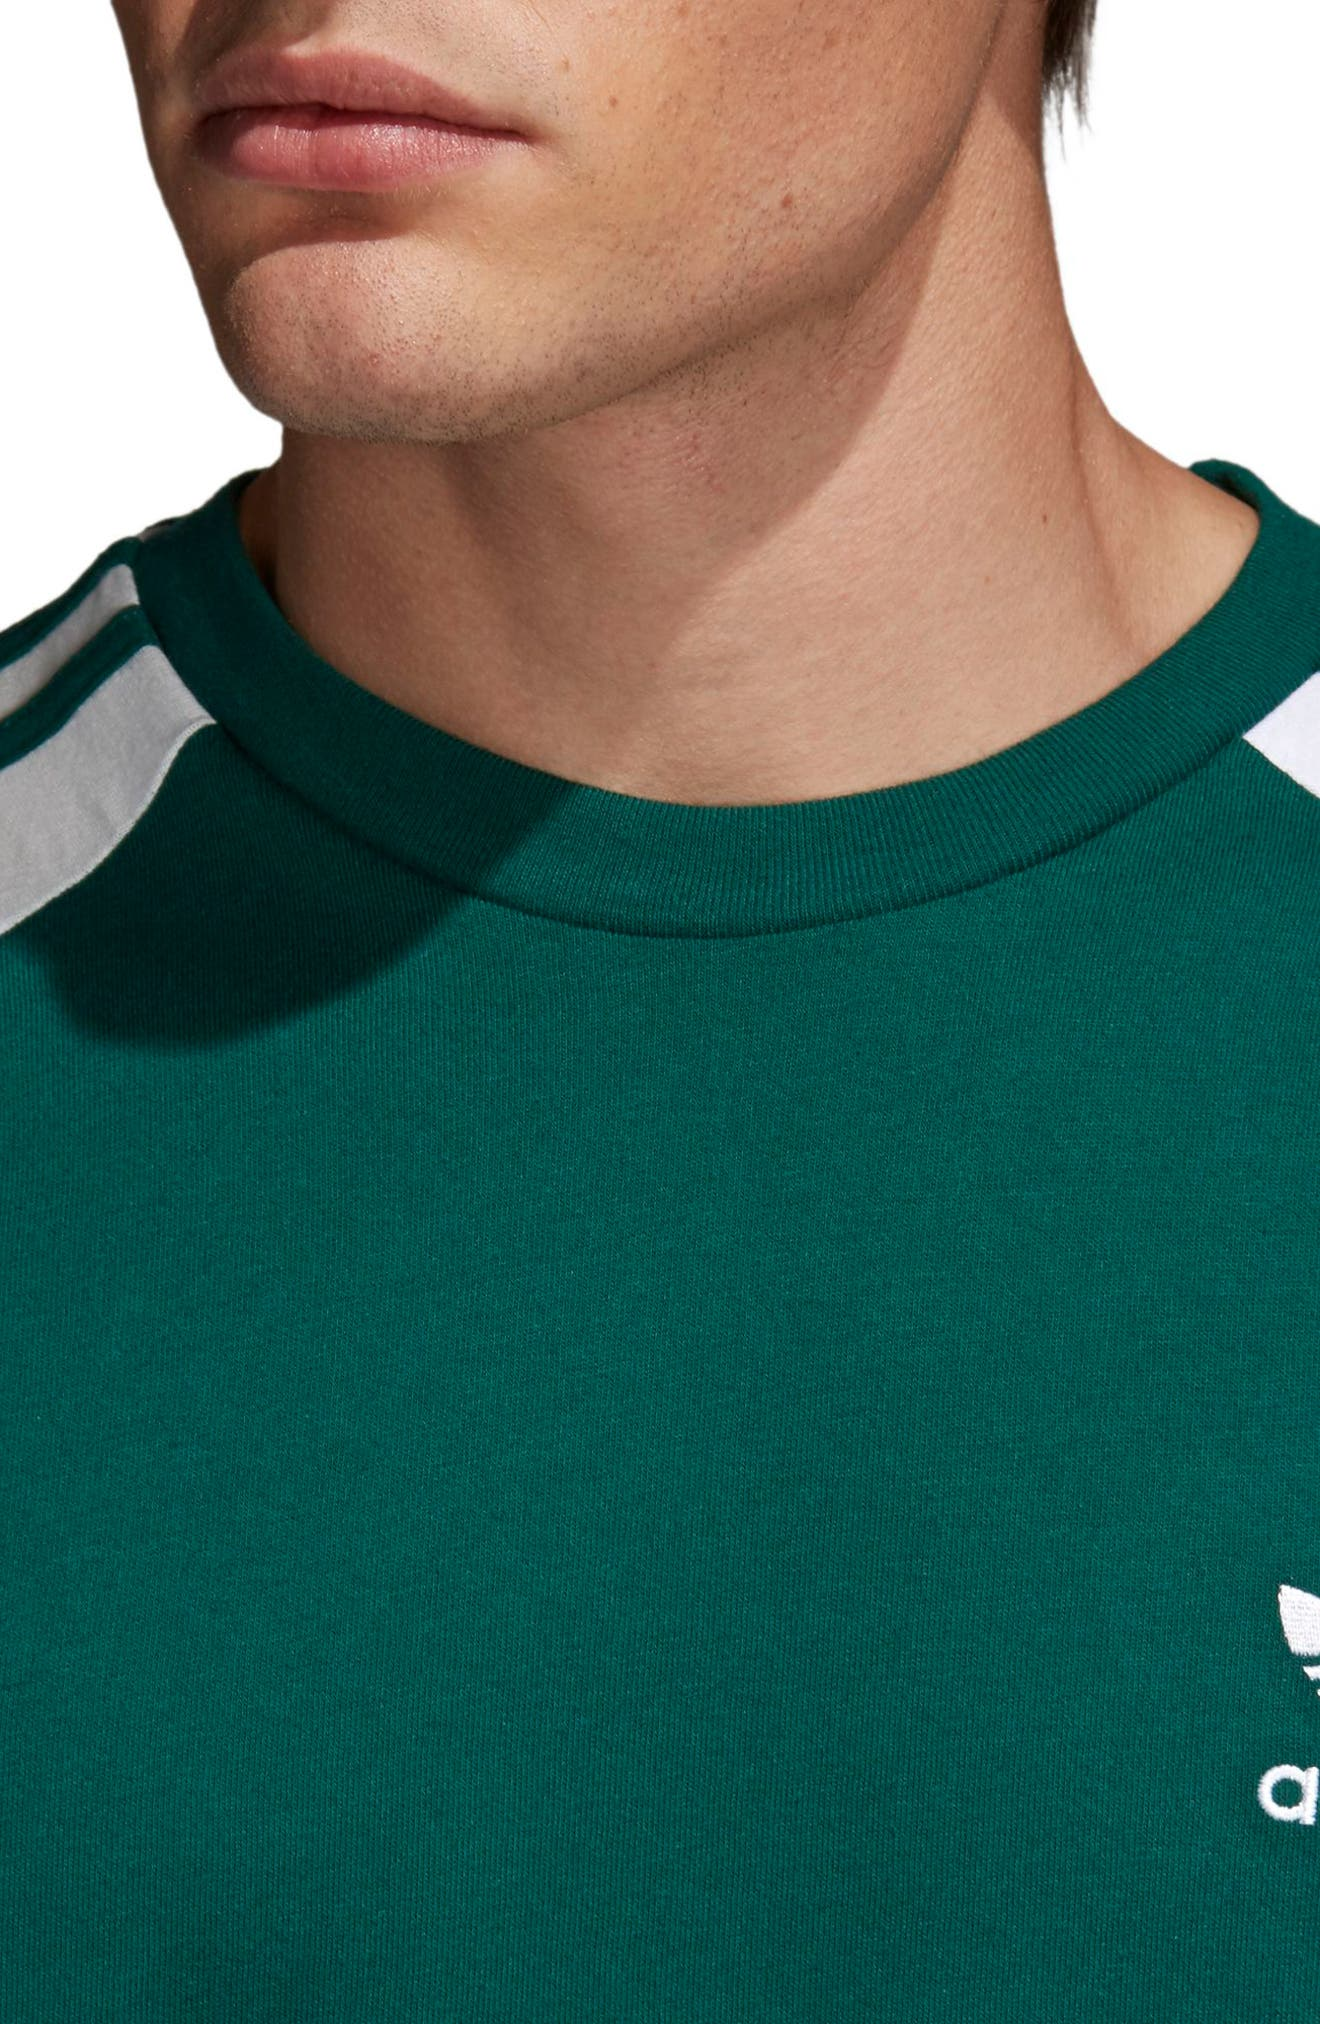 3-Stripes T-Shirt,                             Alternate thumbnail 4, color,                             305